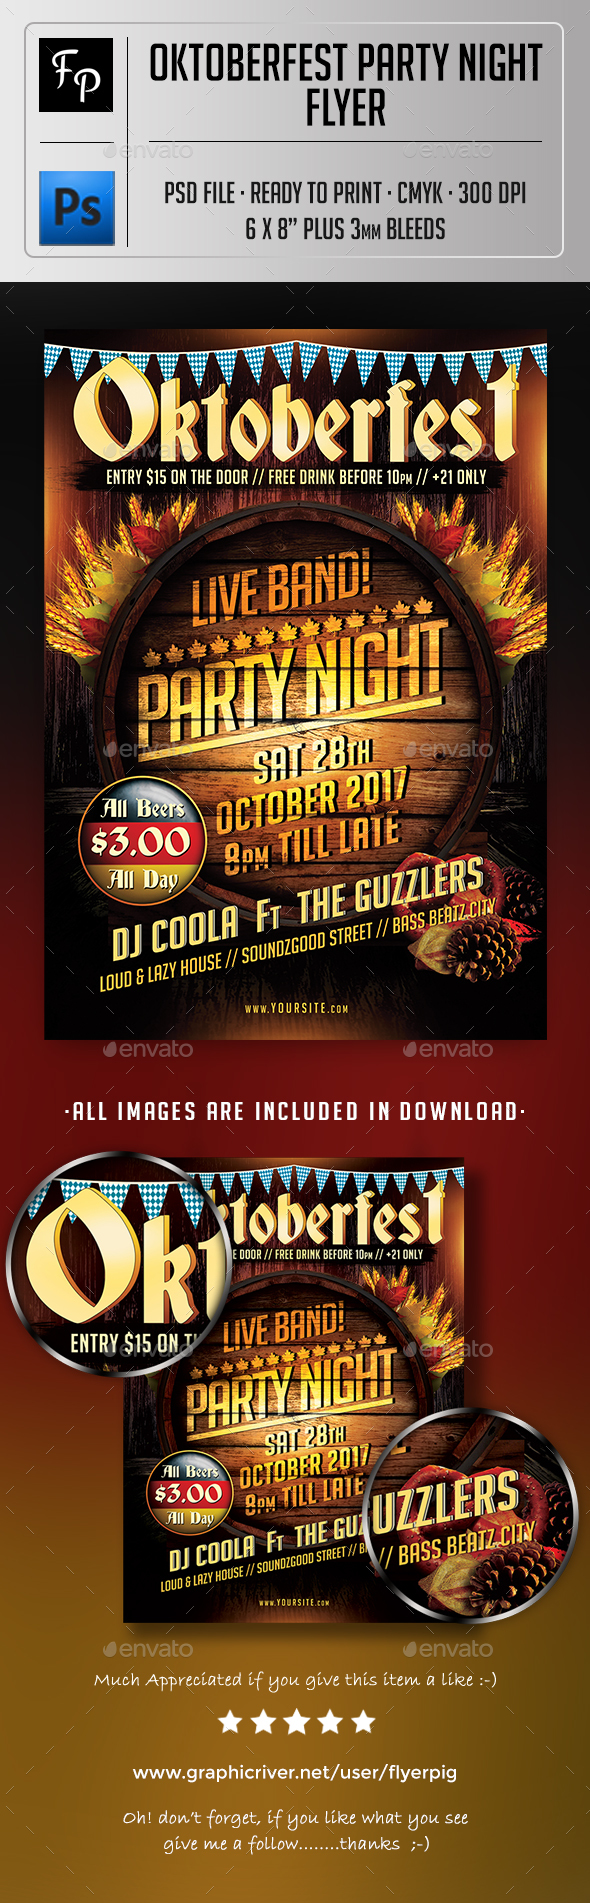 GraphicRiver Oktoberfest Party Night Flyer 20675617